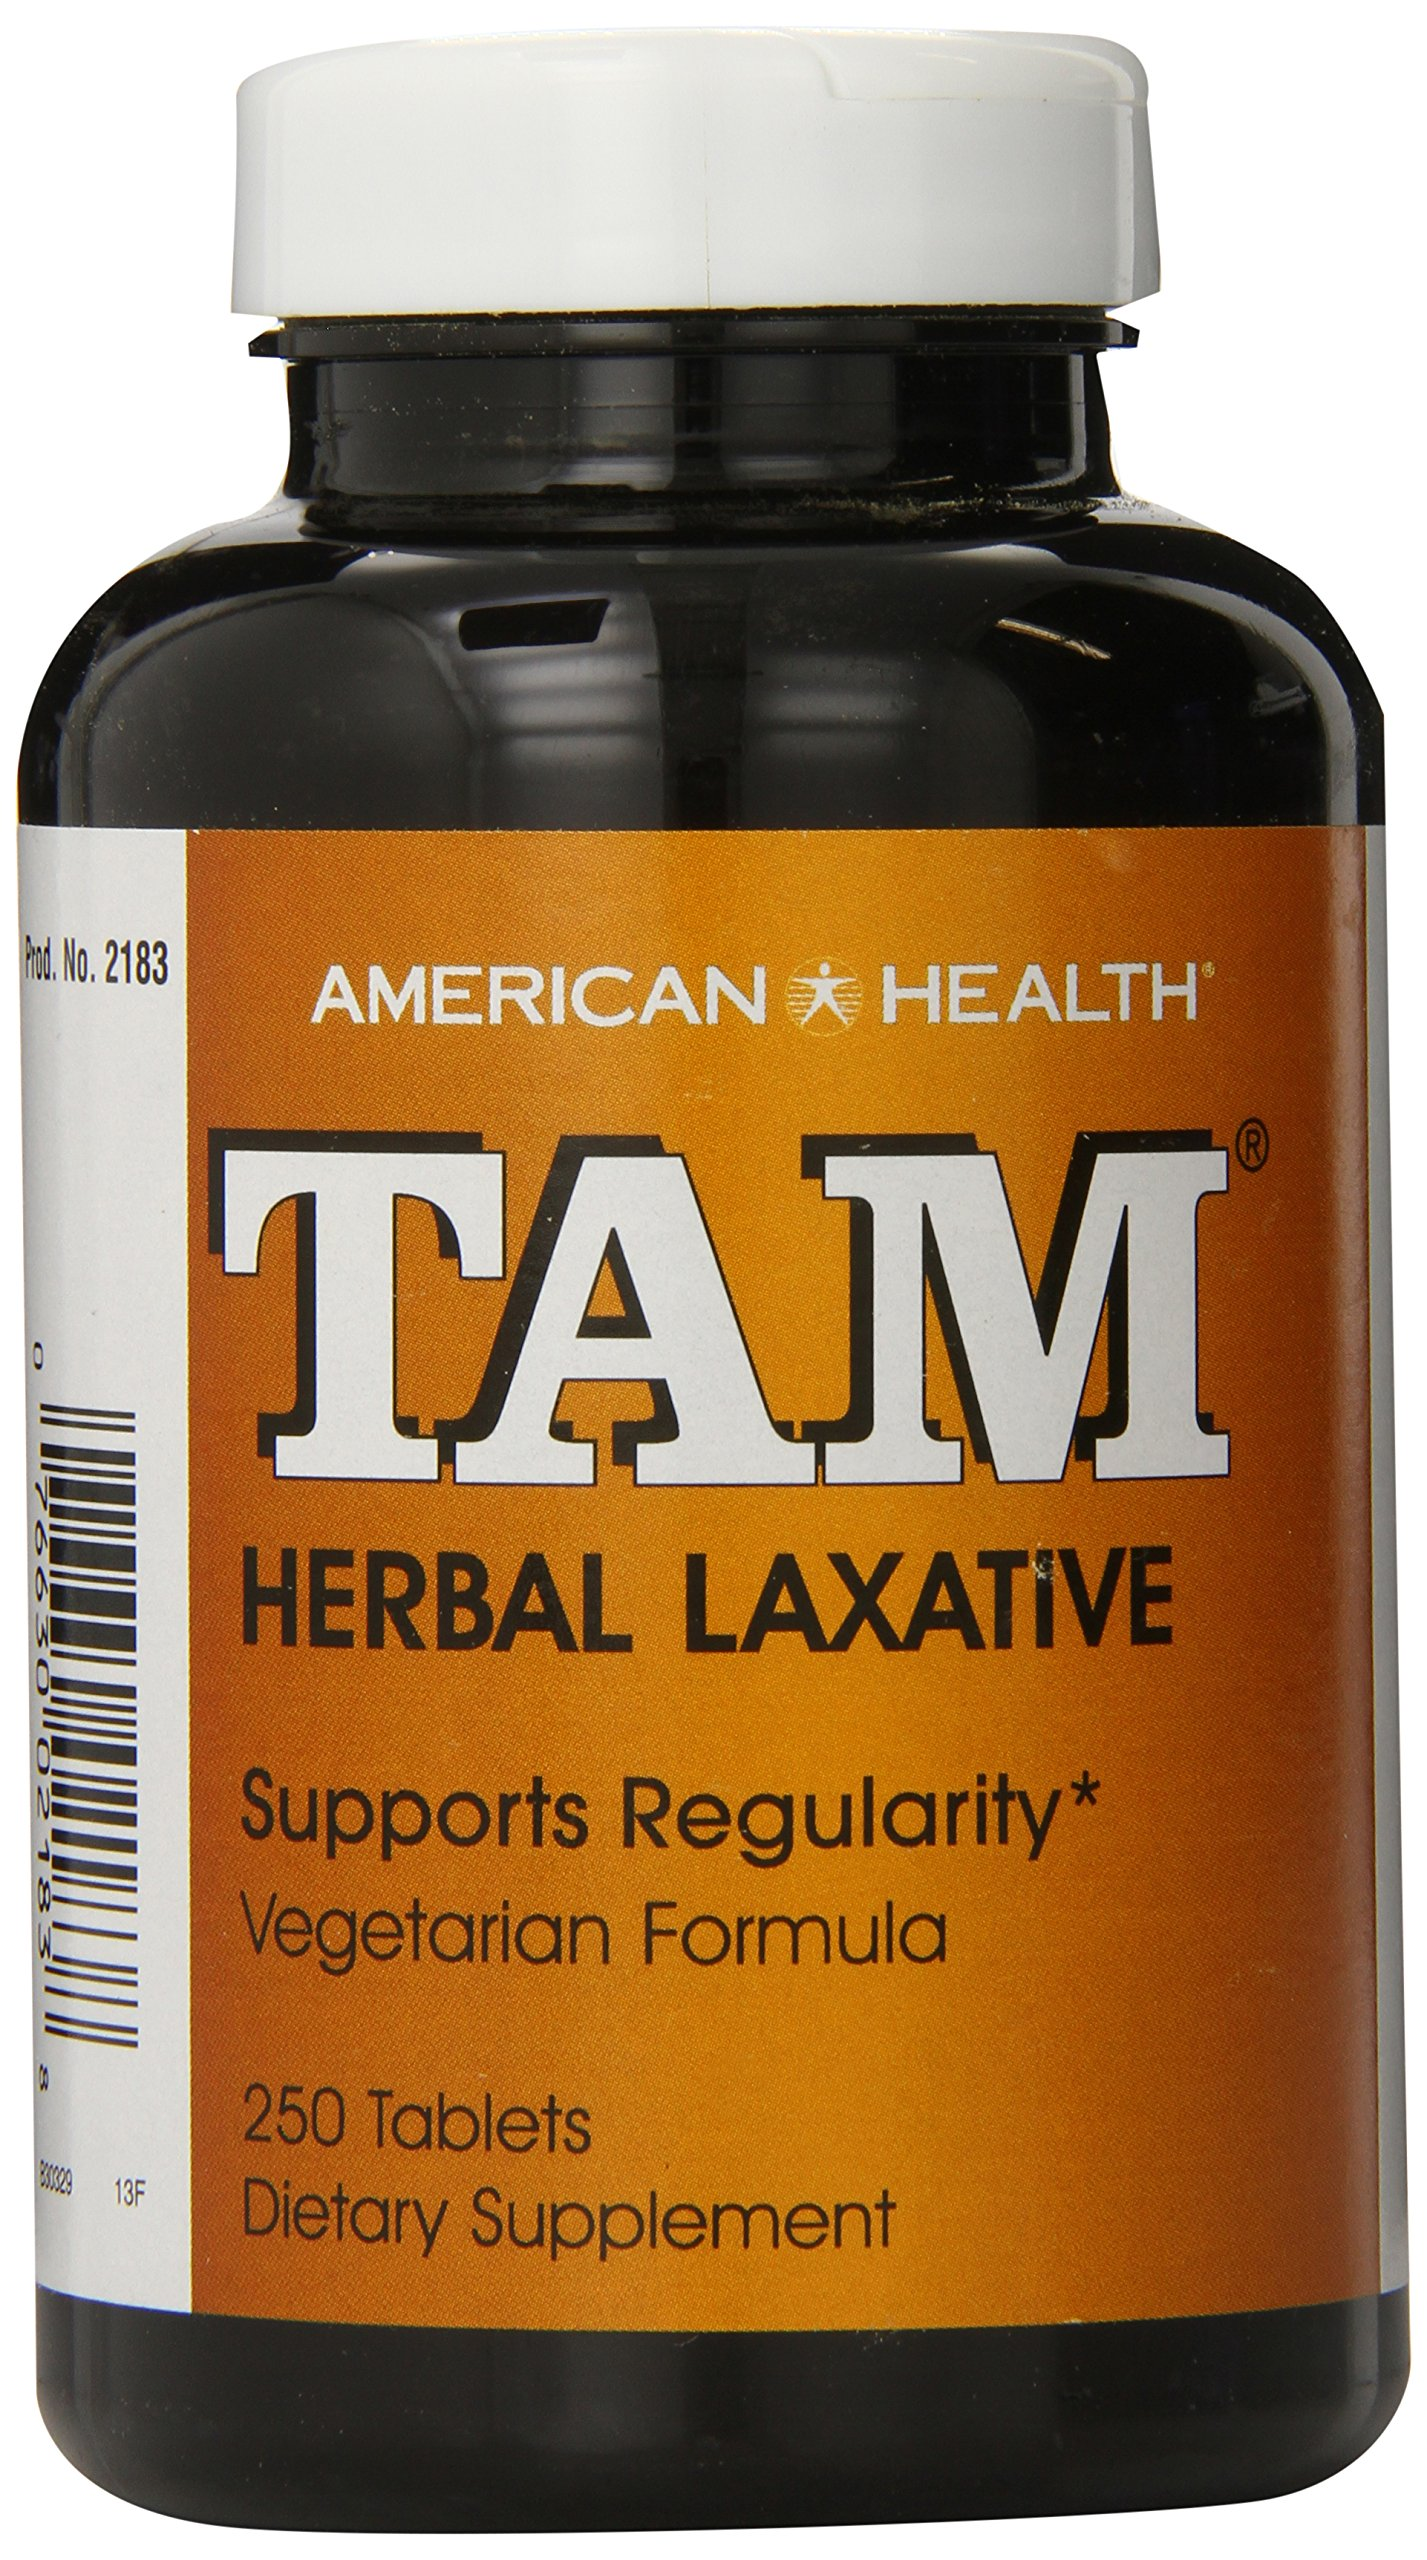 American Health Dietary Fiber Supplements, Tam Herbal Laxative, 250 Count